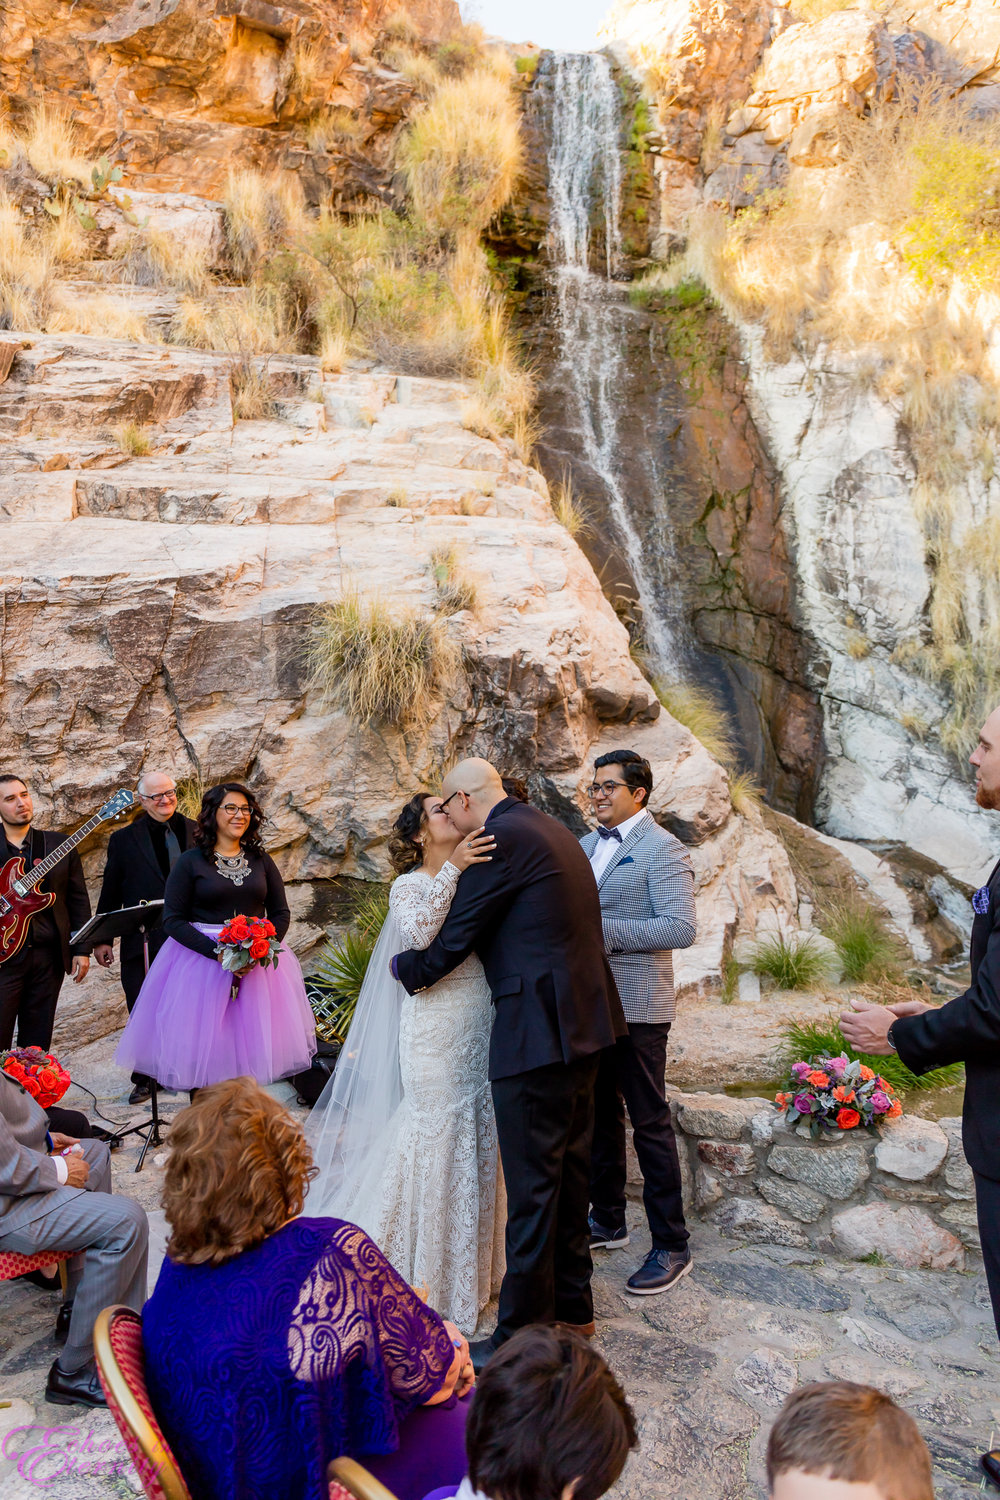 The Wedding of Zuri and George Tucson Arizona Wedding Photographer Lowes Ventana Canyon 09.jpg